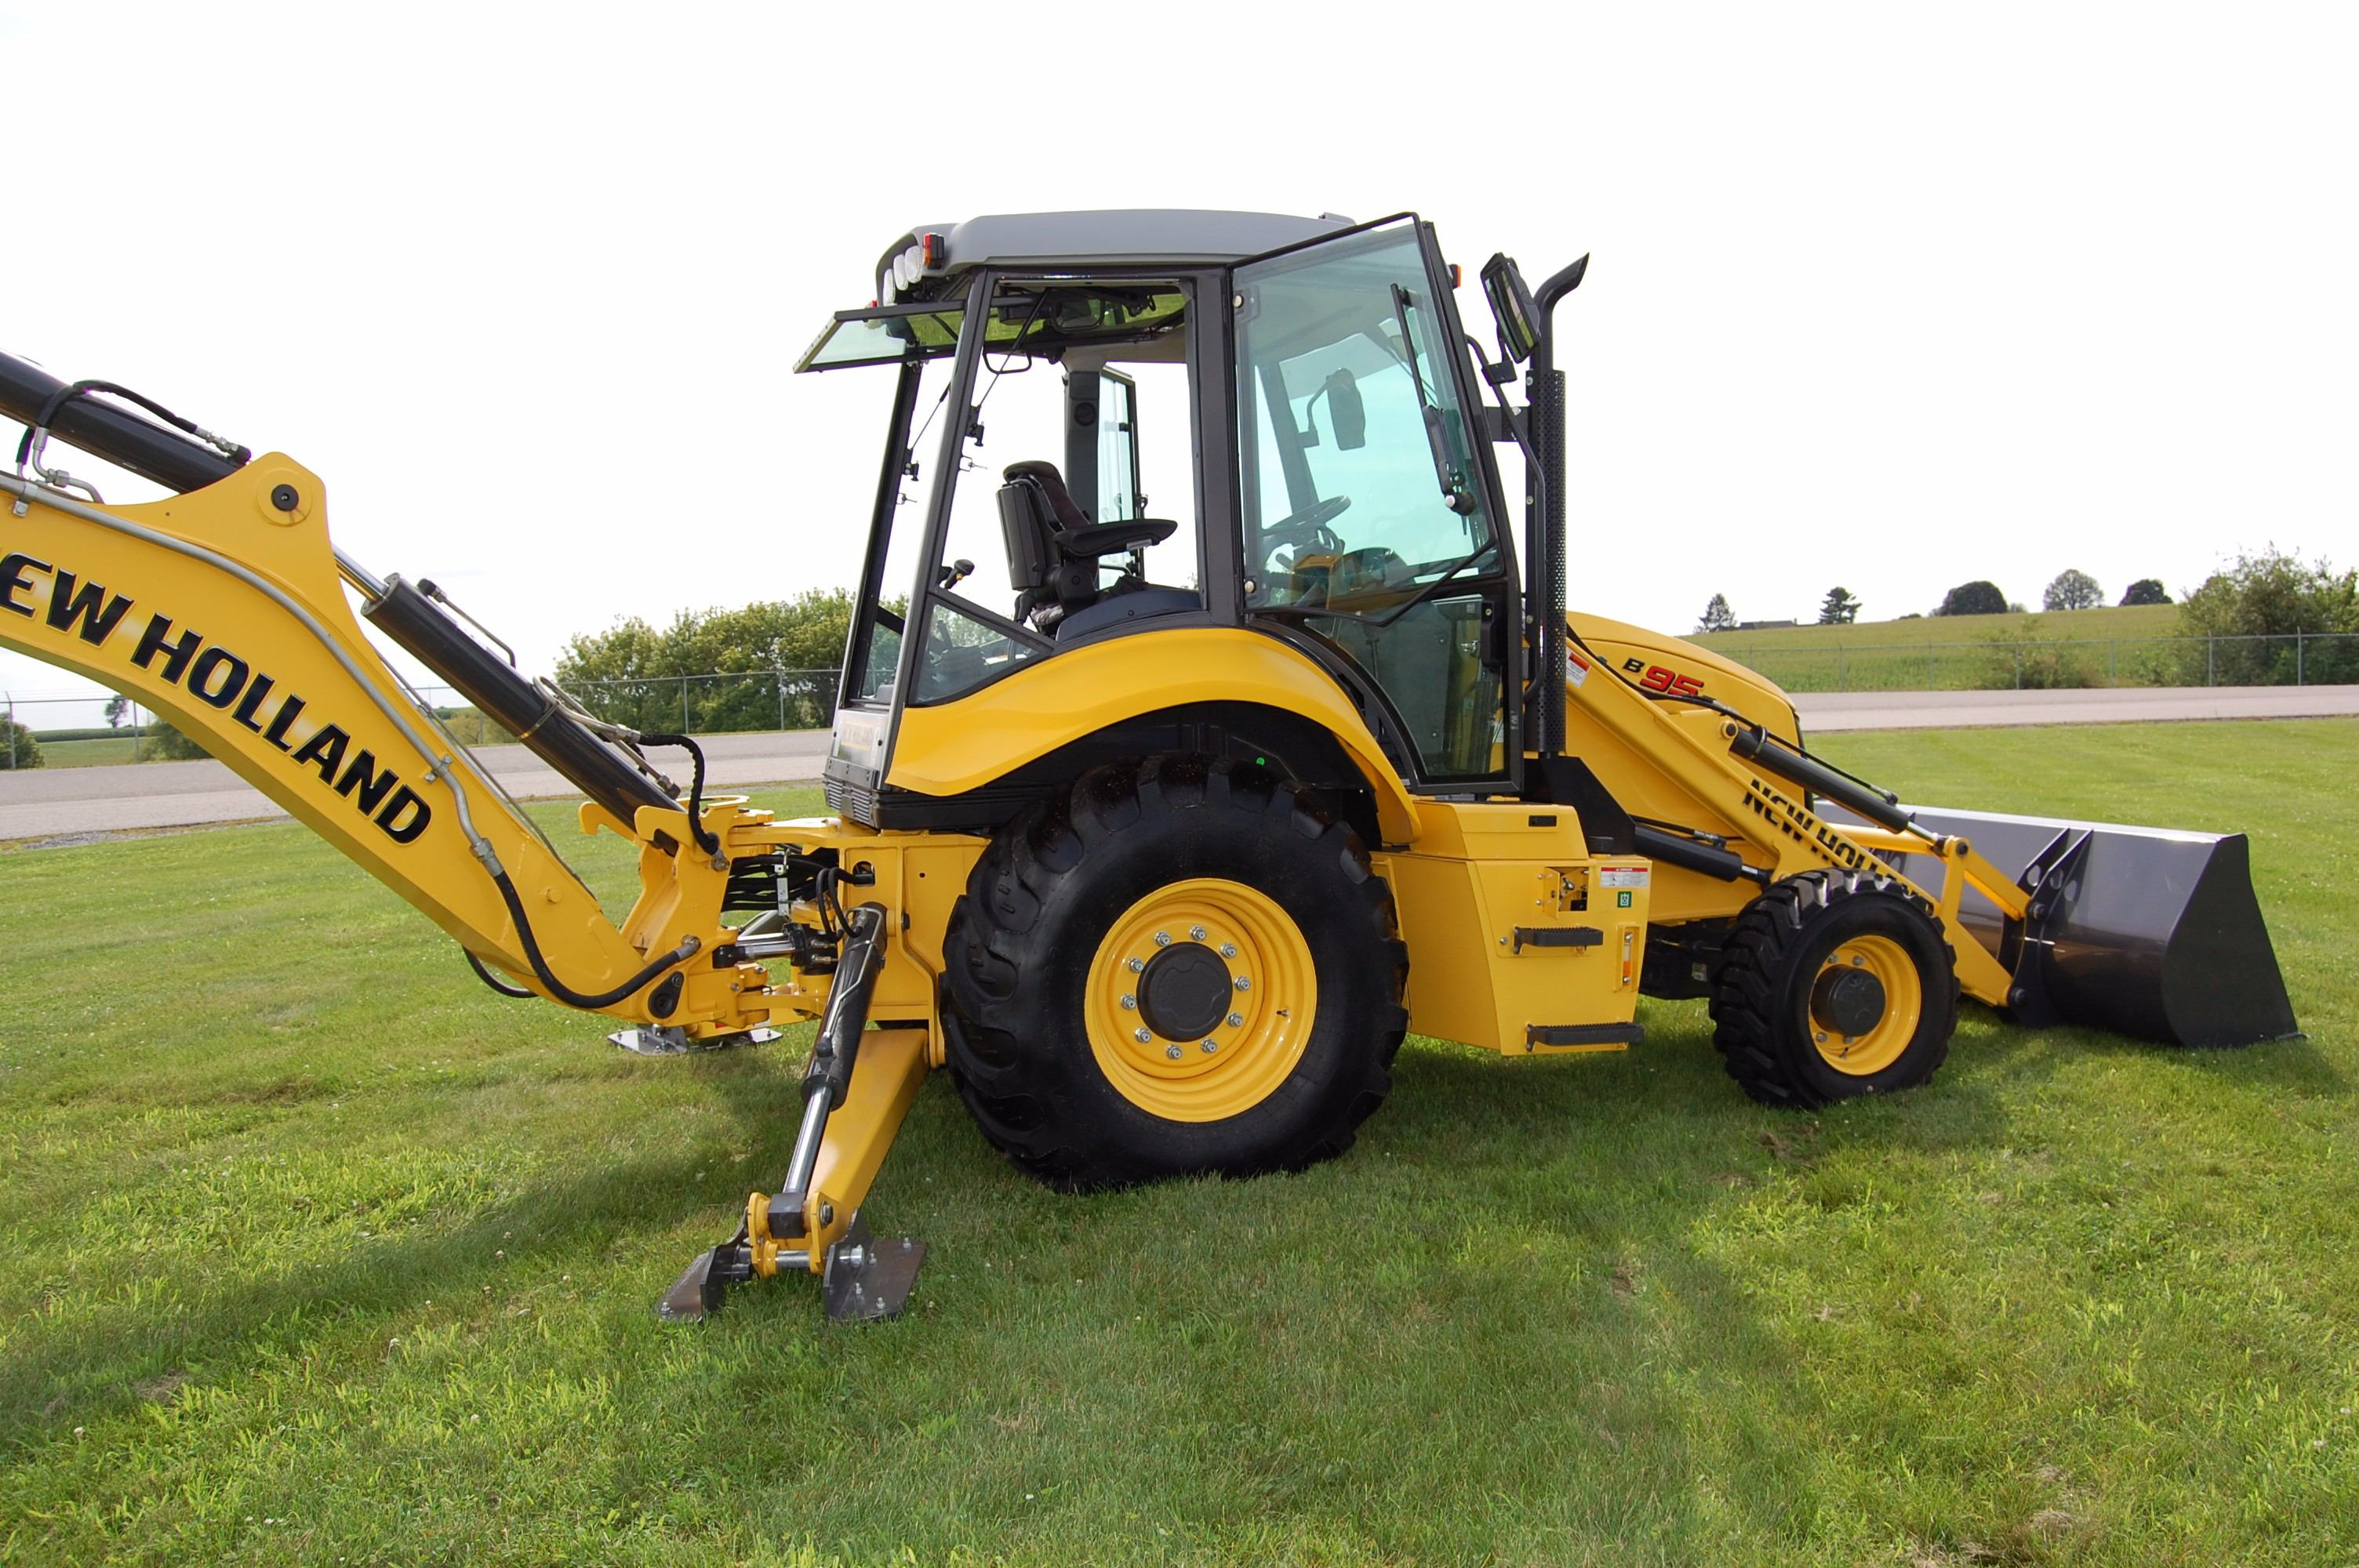 New Holland upgrades backhoe, skid steer lines with power ...